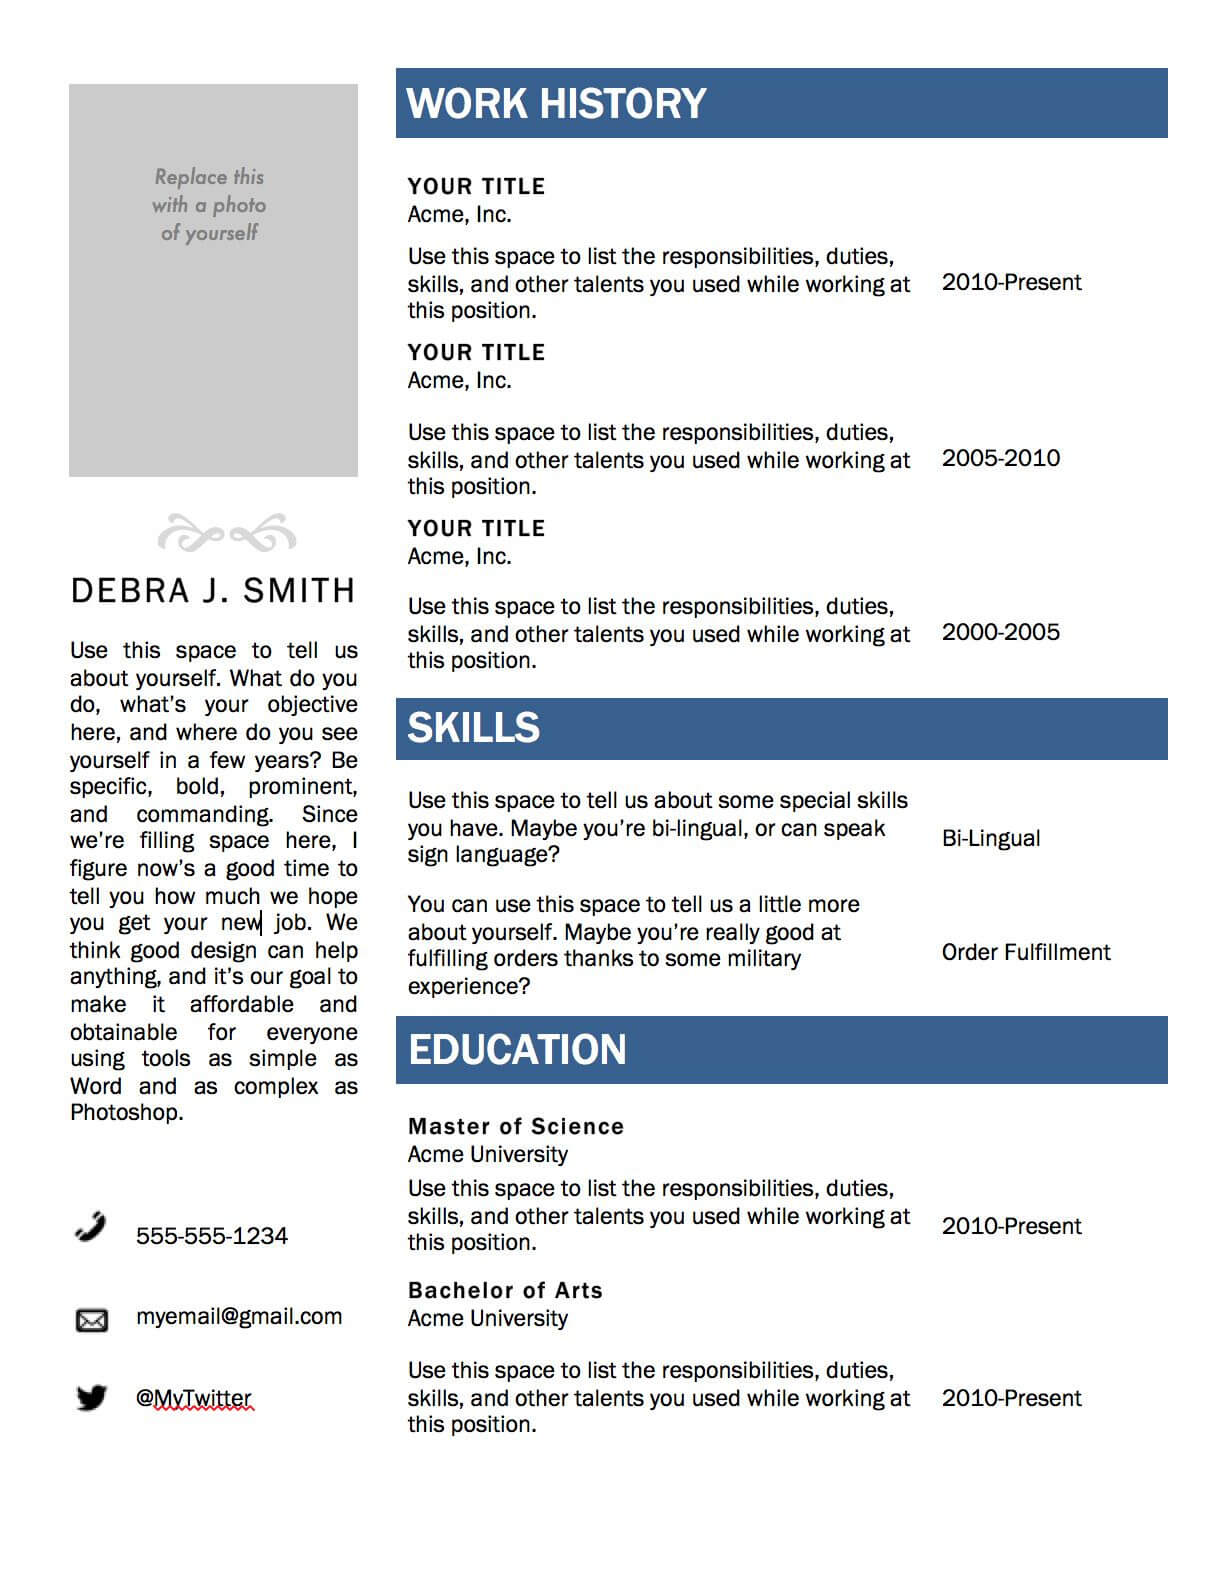 Free Microsoft Word Resume Template | Projects To Try Throughout Resume Templates Microsoft Word 2010